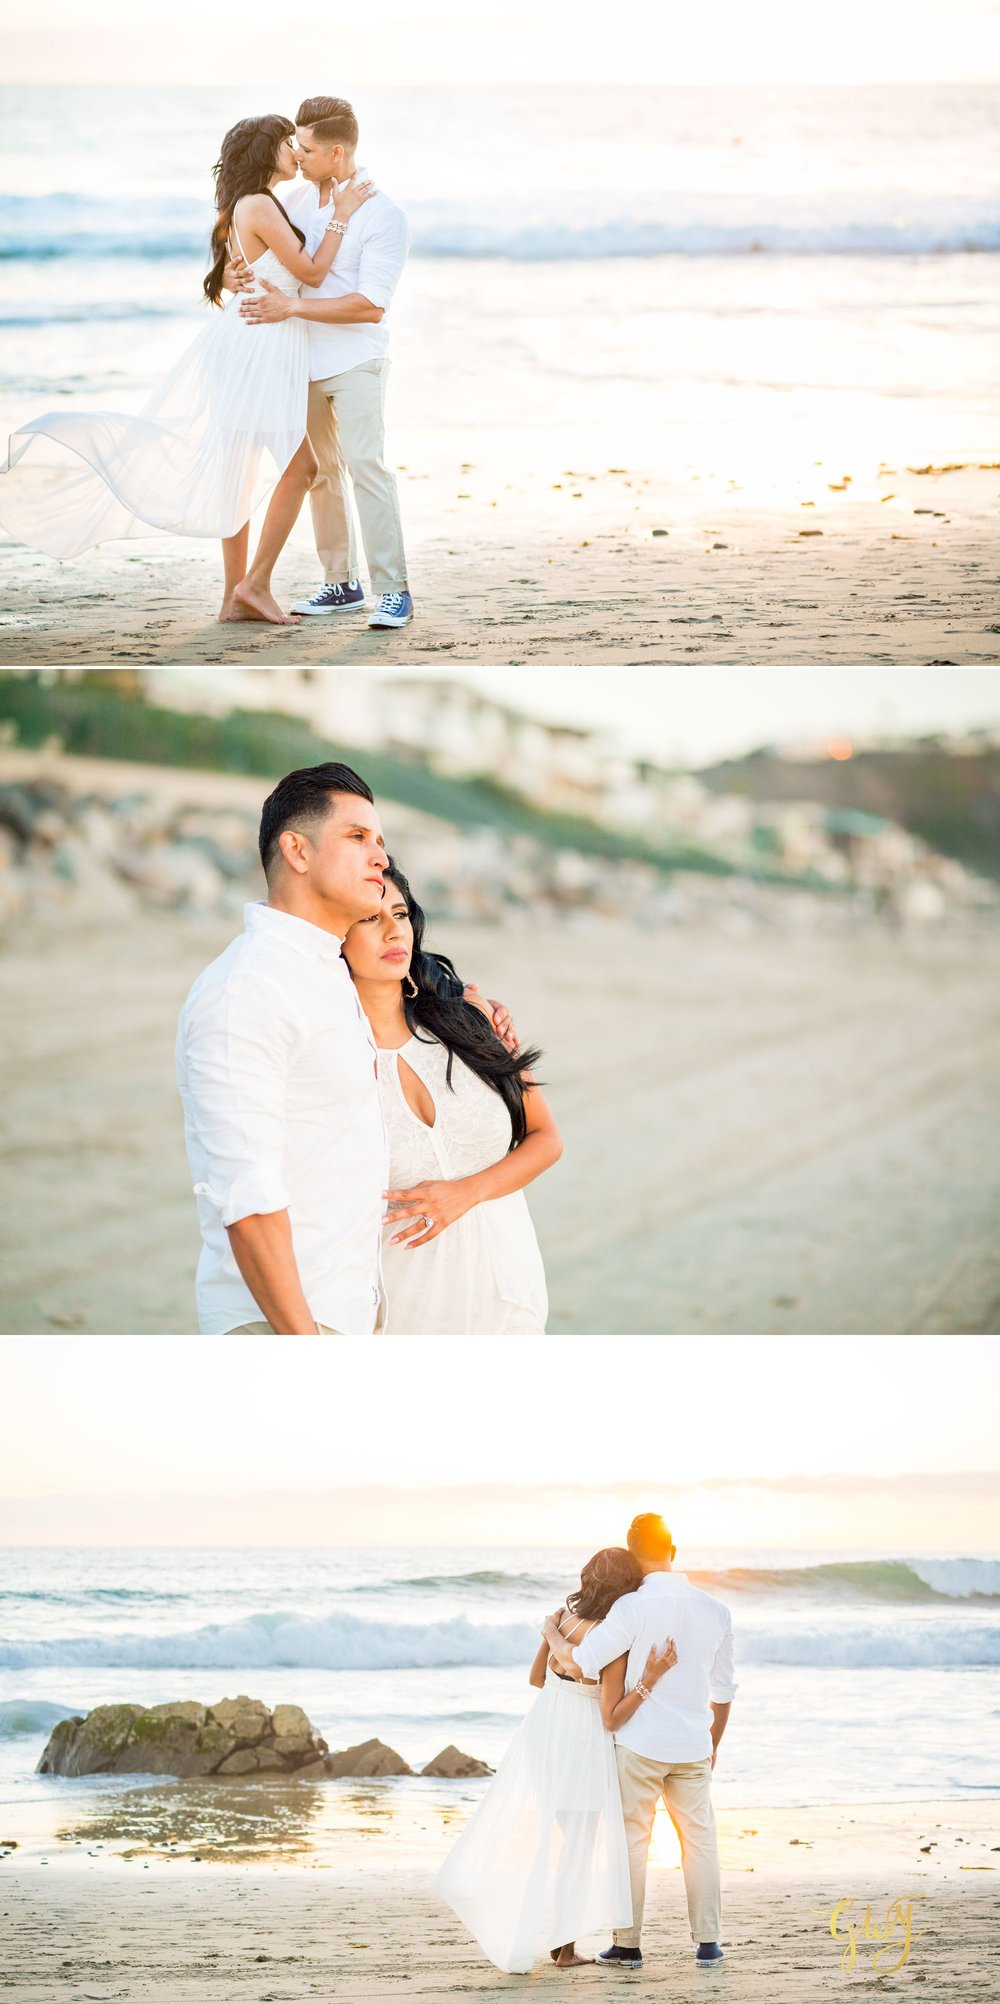 Angela + Drew Mission San Juan Capistrano Strands Beach Sunset Engagement 15.jpg